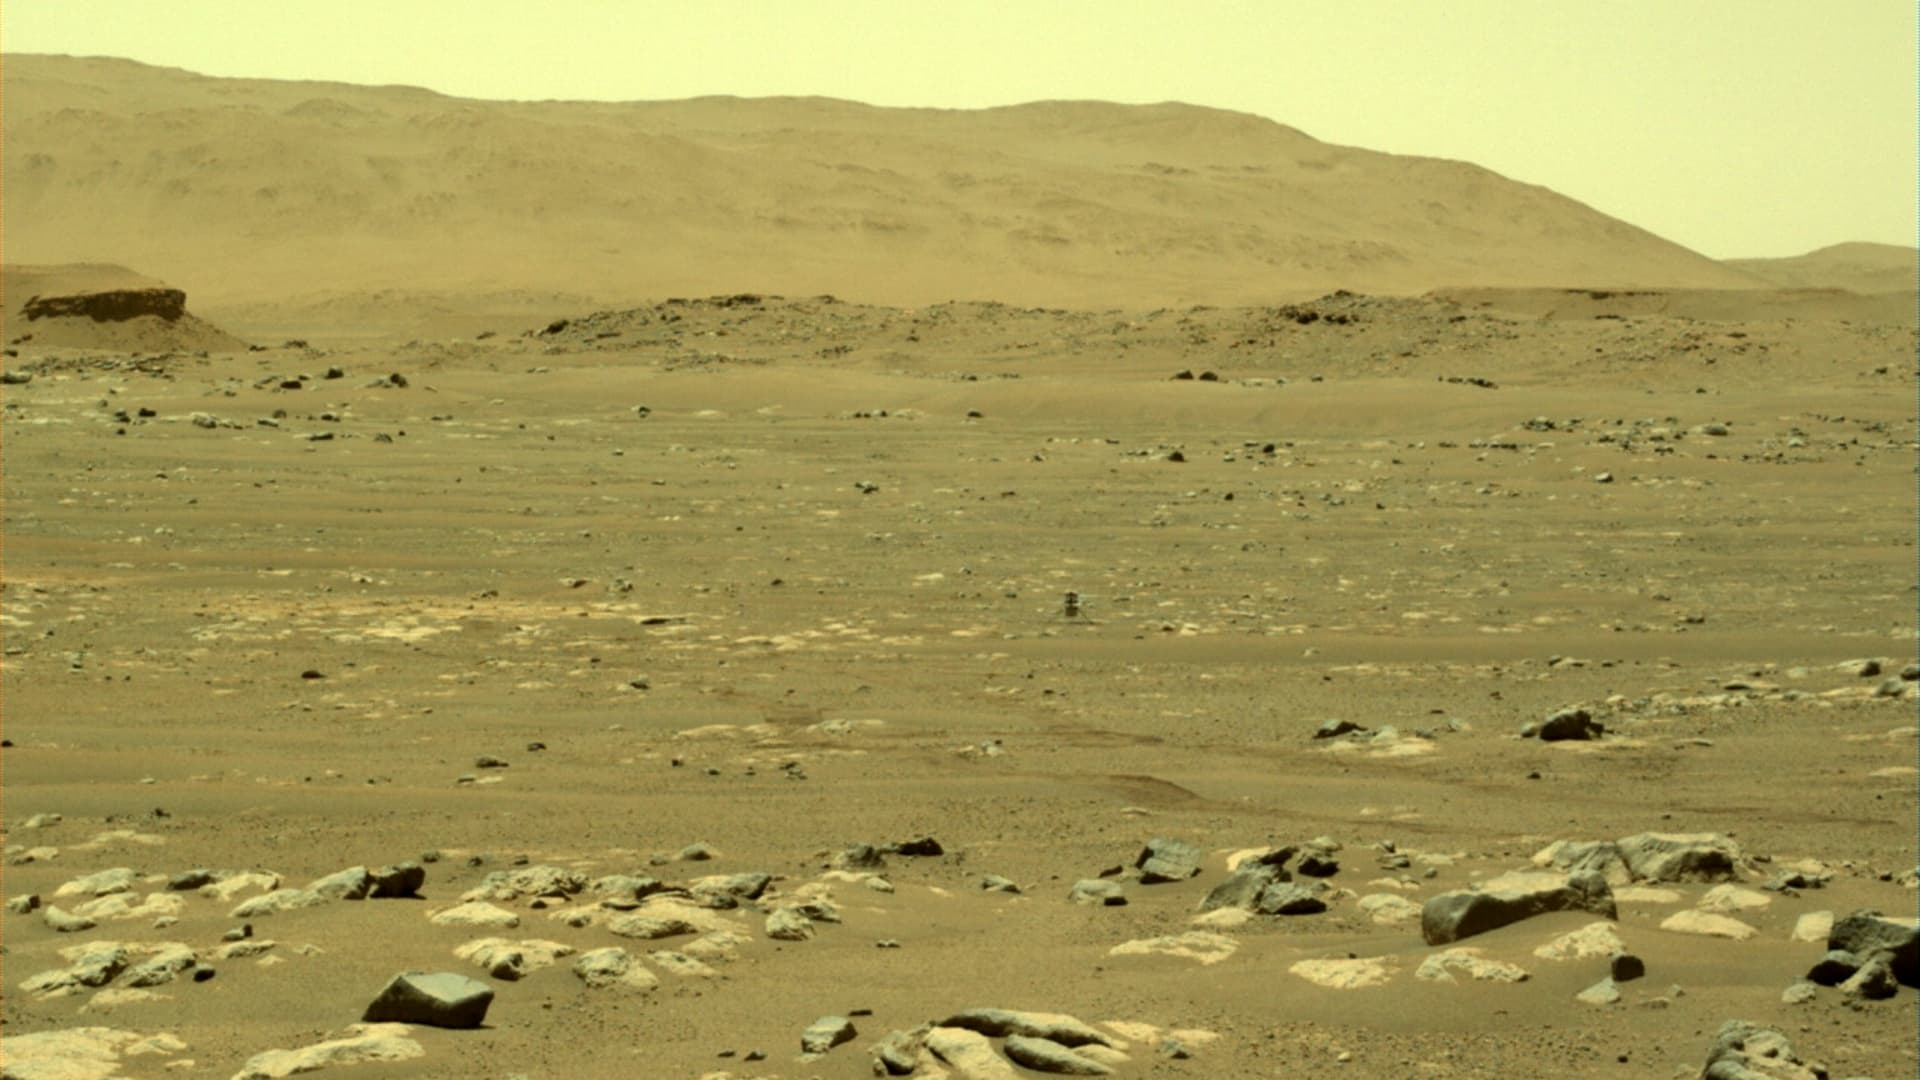 NASA helicopter Ingenuity back on the surface of Mars after its first flight on April 19, 2021, captured by a camera on the Perseverance rover.